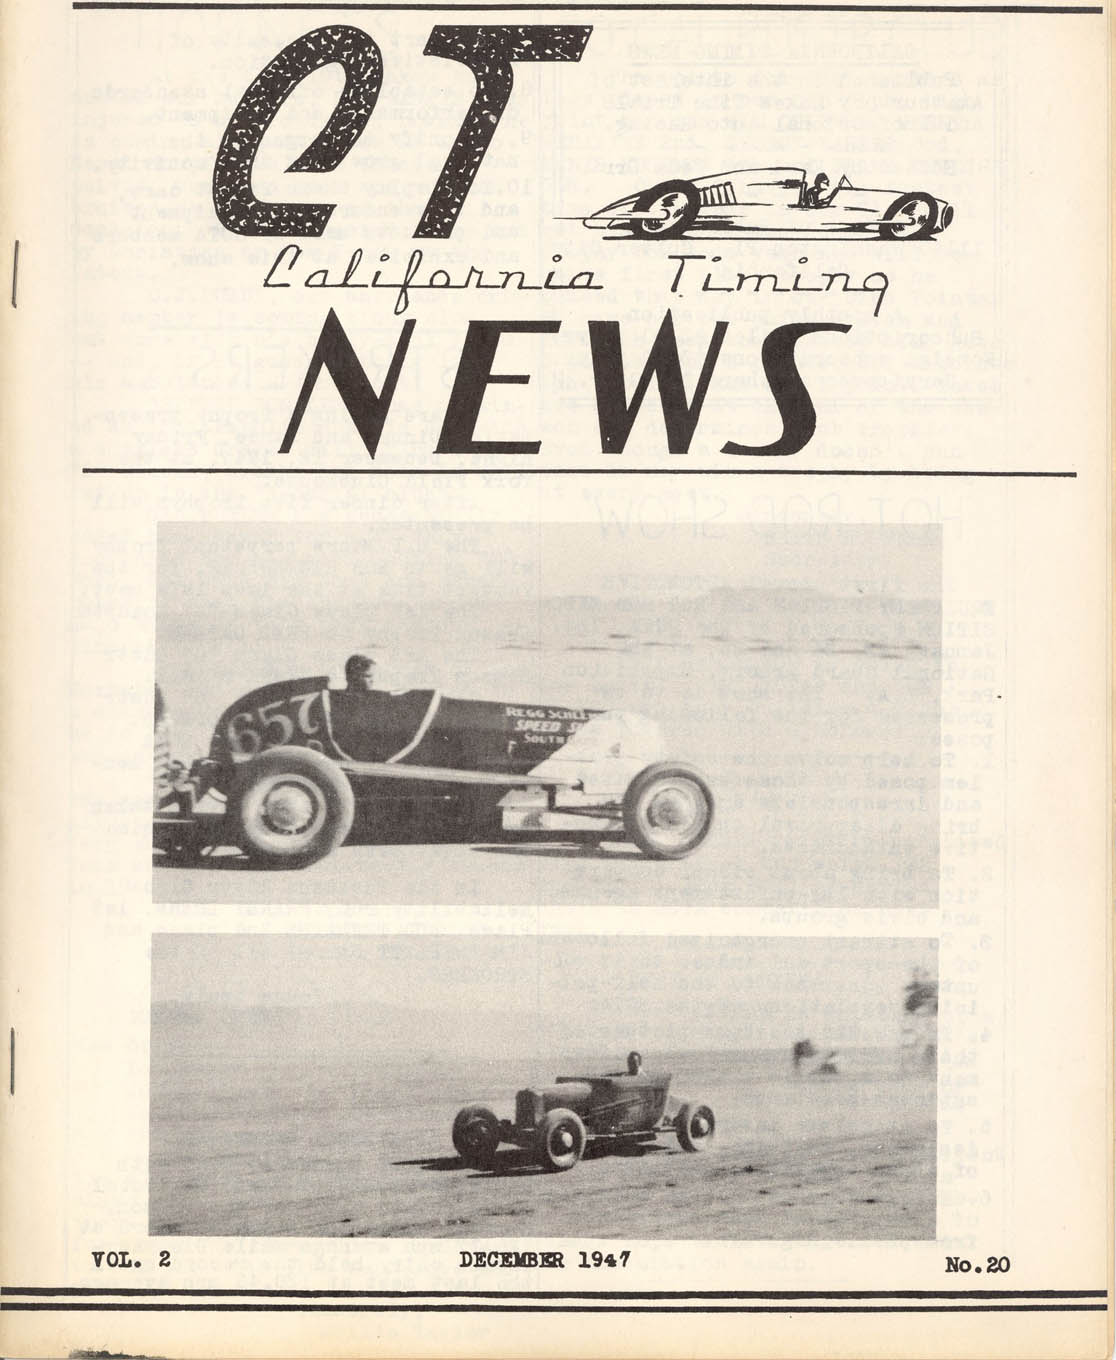 The streamliner's success earned it prominent placement on the cover of two successive issues of Karl and Veda Orr's CT News, in November and December 1947. It shares the December cover with Doug Hartelt's roadster, the two cars in a tie for First in points.